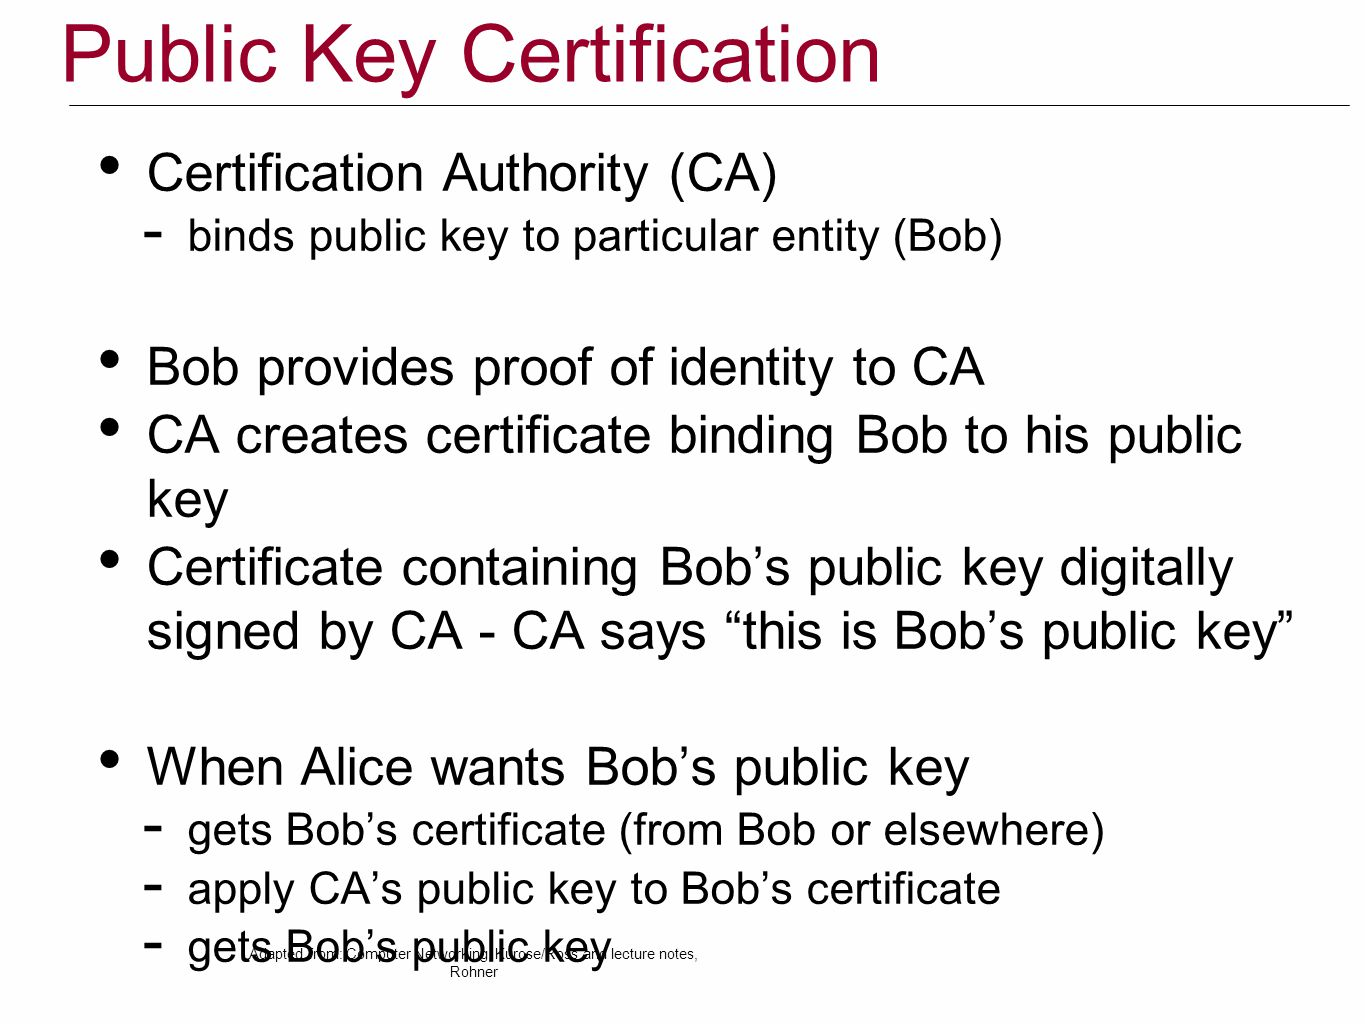 Public Key Certification Certification Authority (CA)  binds public key to particular entity (Bob) Bob provides proof of identity to CA CA creates certificate binding Bob to his public key Certificate containing Bob's public key digitally signed by CA - CA says this is Bob's public key When Alice wants Bob's public key  gets Bob's certificate (from Bob or elsewhere)  apply CA's public key to Bob's certificate  gets Bob's public key Adapted from: Computer Networking, Kurose/Ross and lecture notes, Rohner